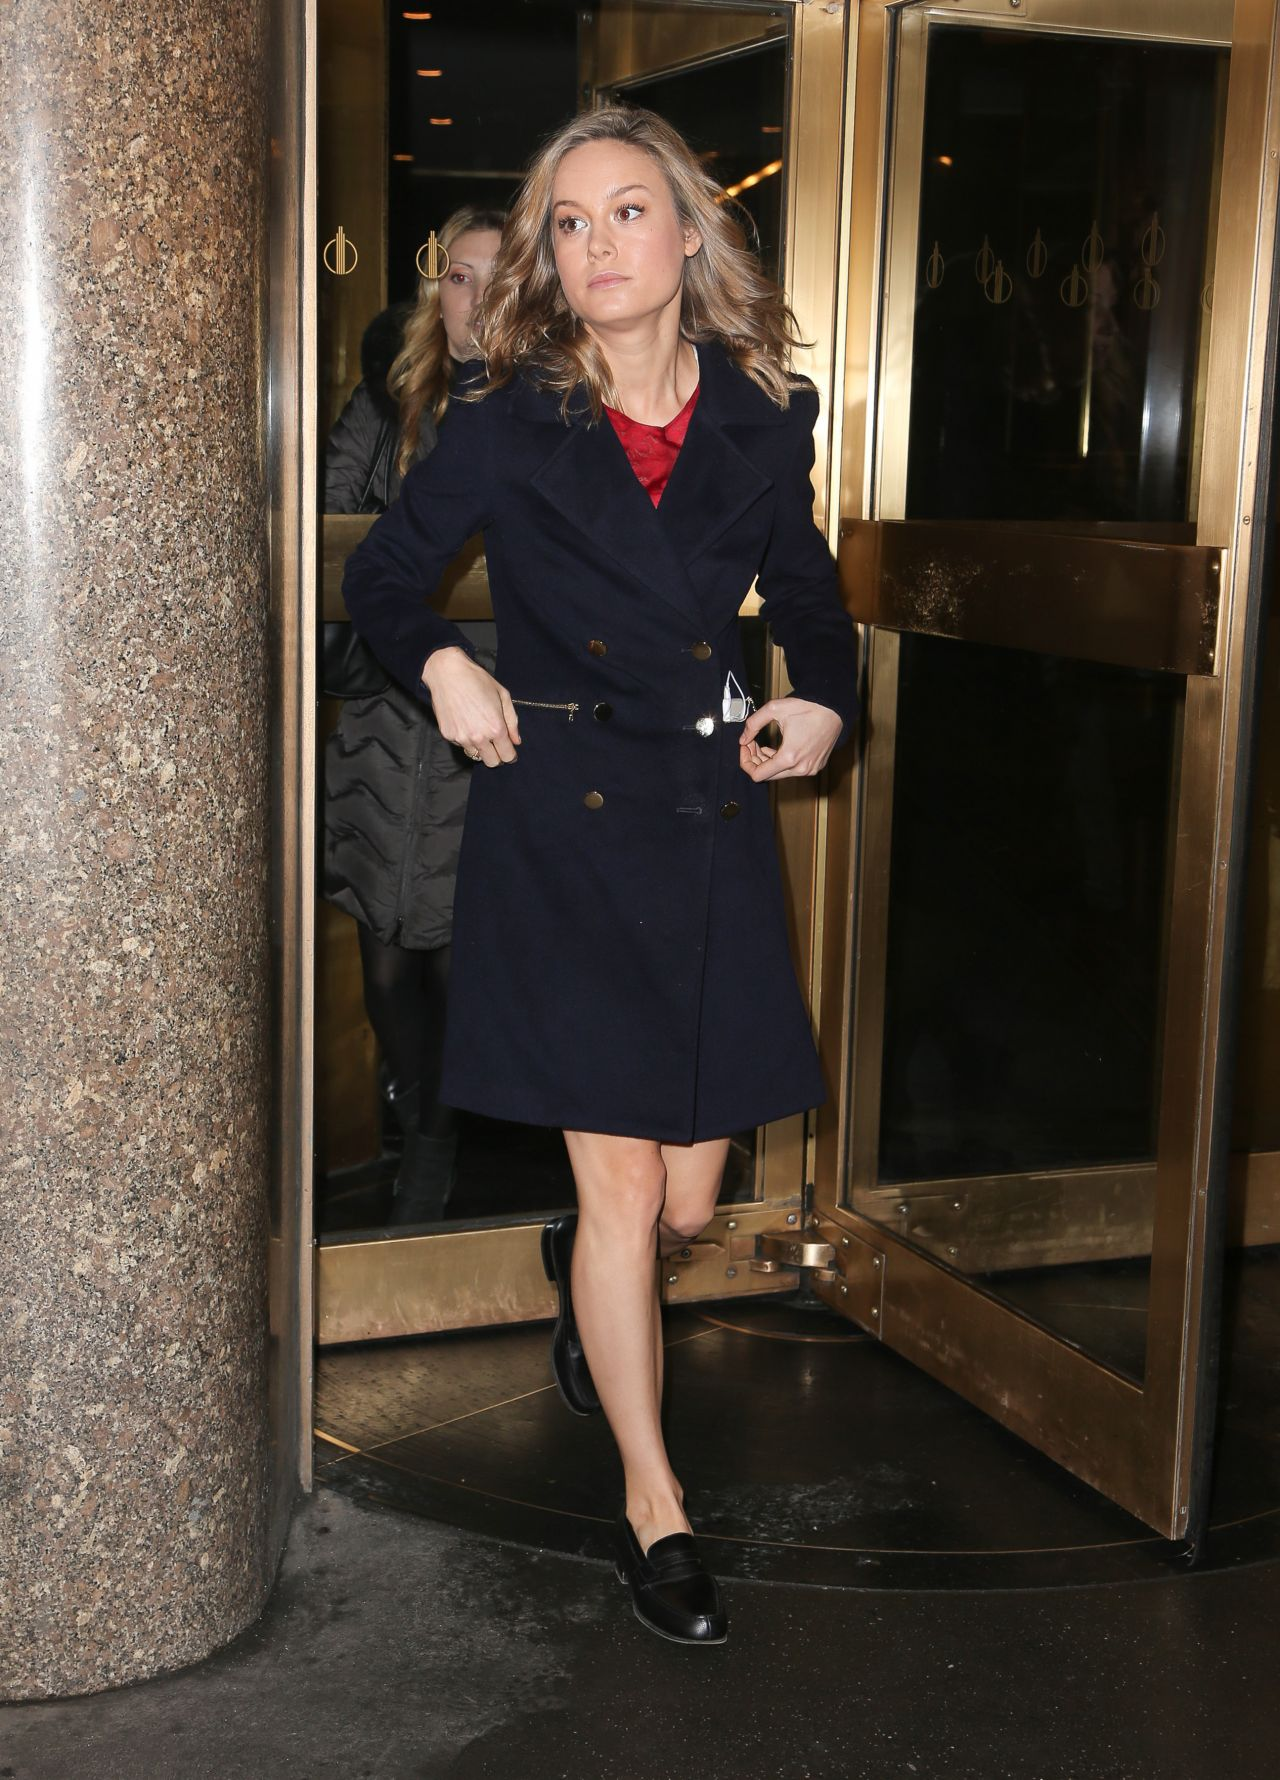 Brie Larson Style Leaving The Nbc Studios In New York